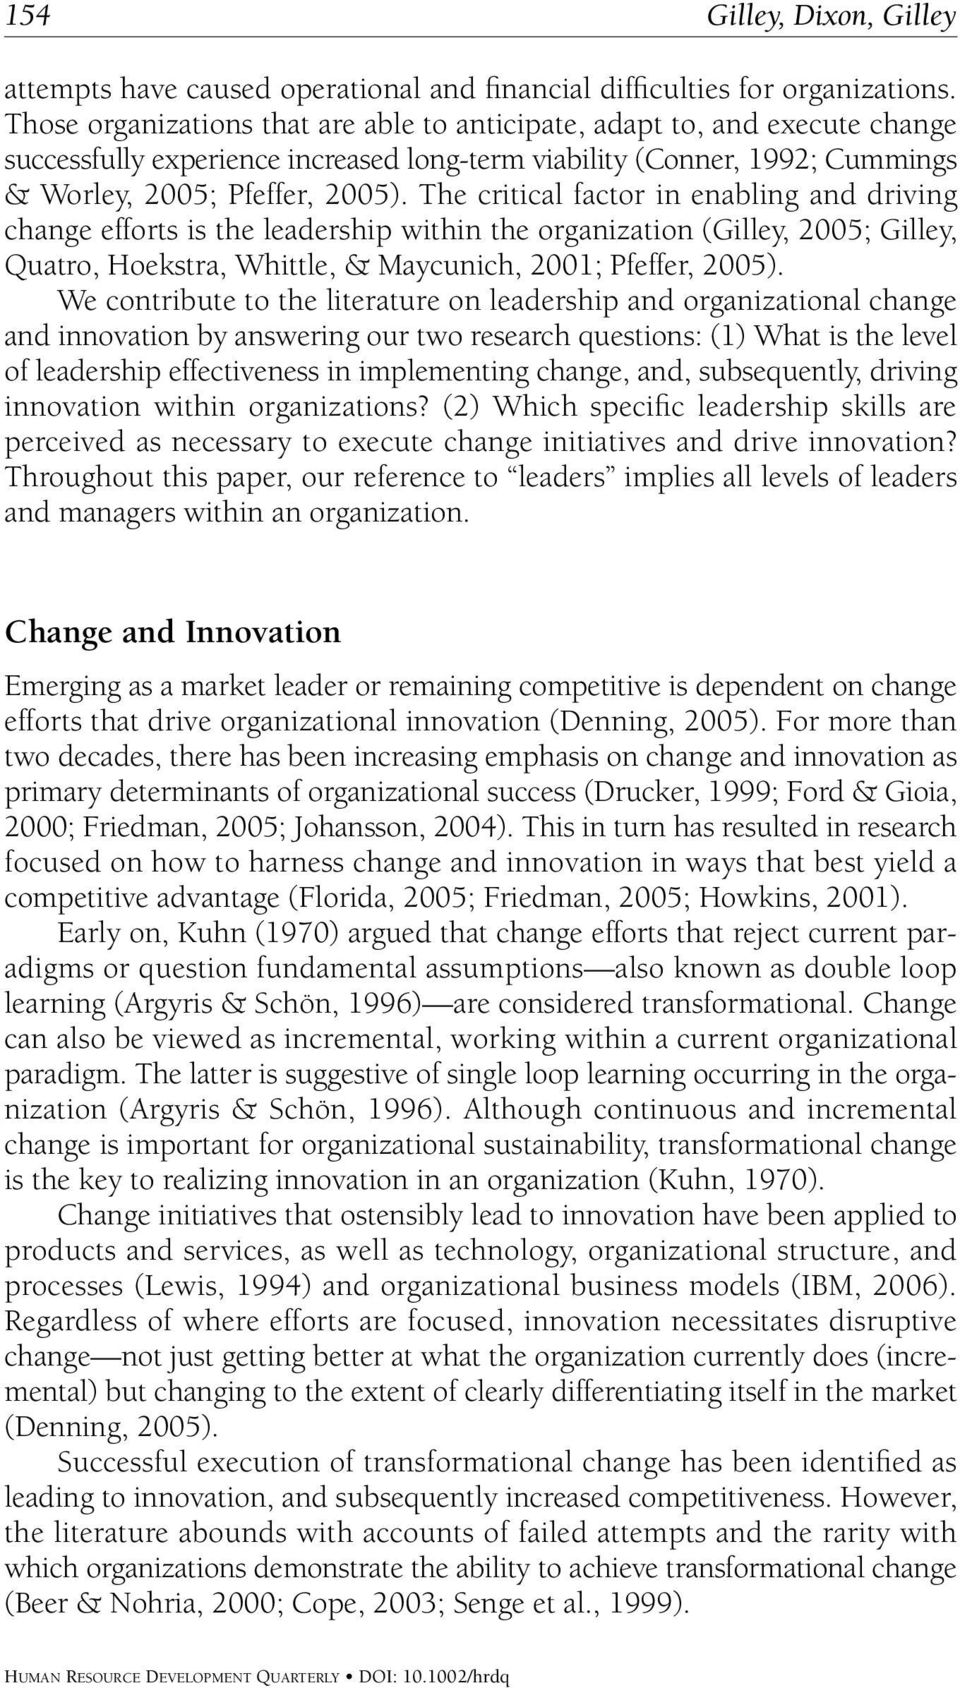 The critical factor in enabling and driving change efforts is the leadership within the organization (Gilley, 2005; Gilley, Quatro, Hoekstra, Whittle, & Maycunich, 2001; Pfeffer, 2005).